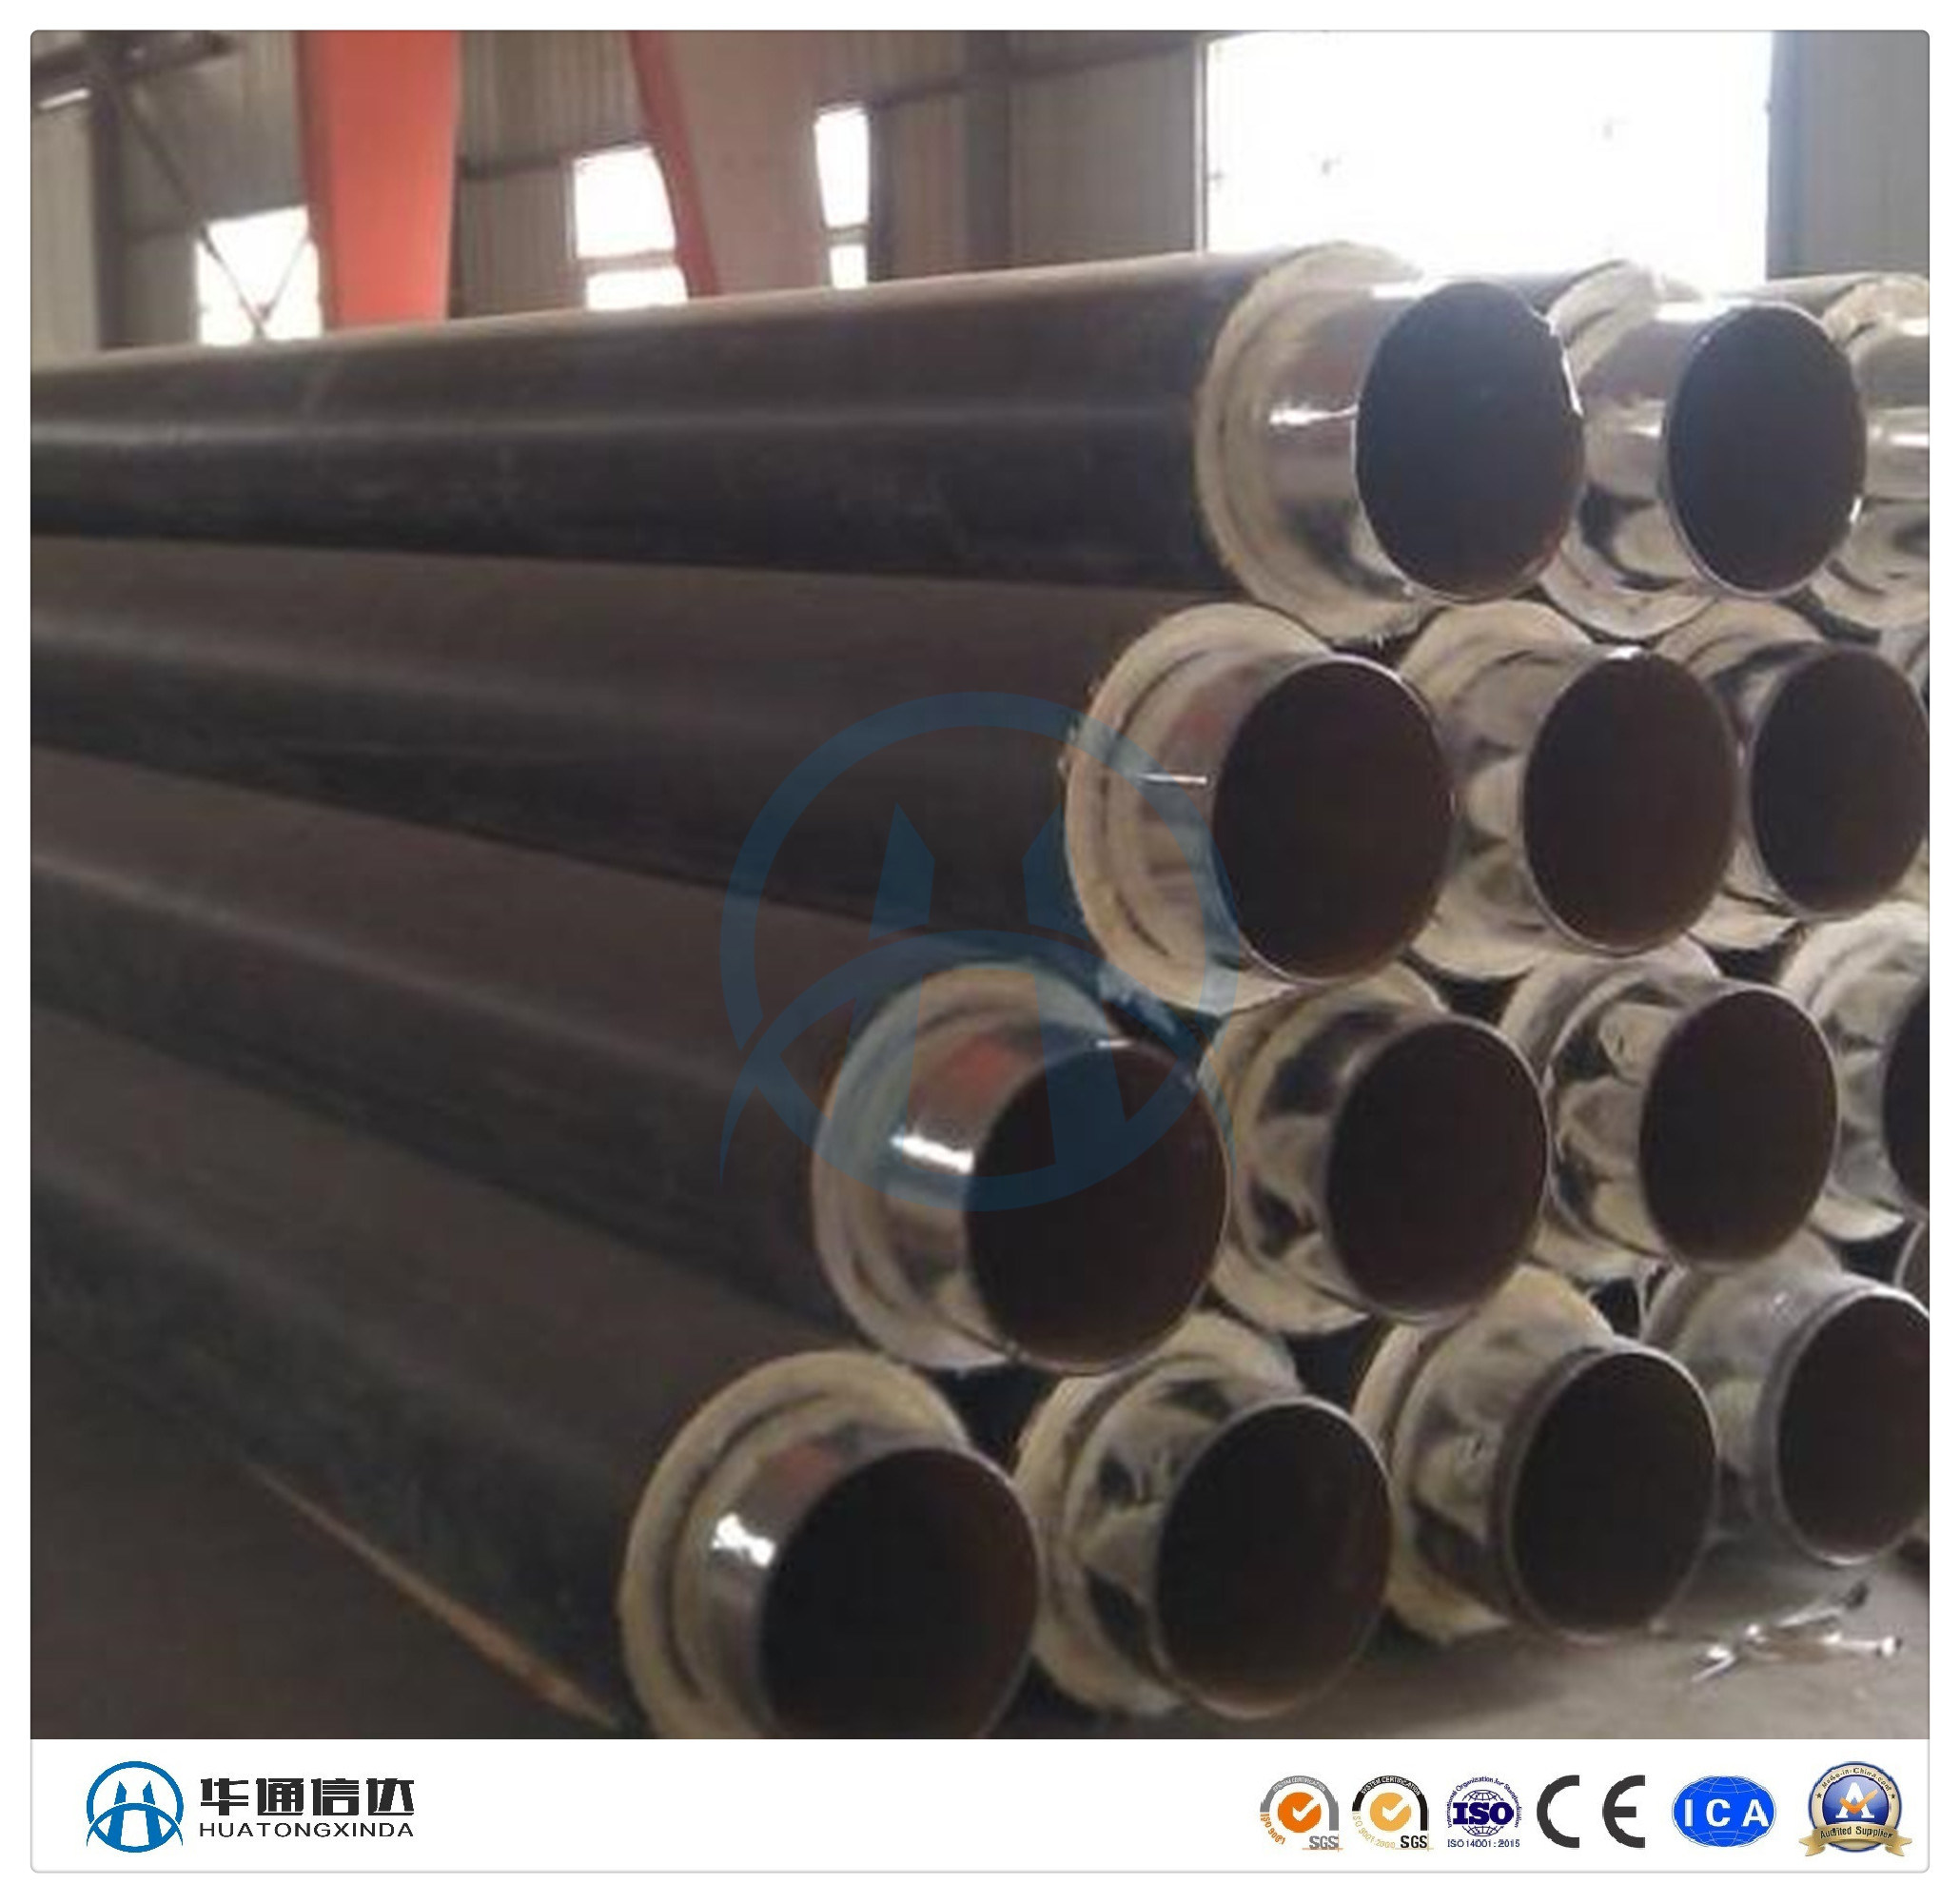 SS304 Stainless Steel  Straight Tubing Pipe 9mm OD X 2 Wall-length by order